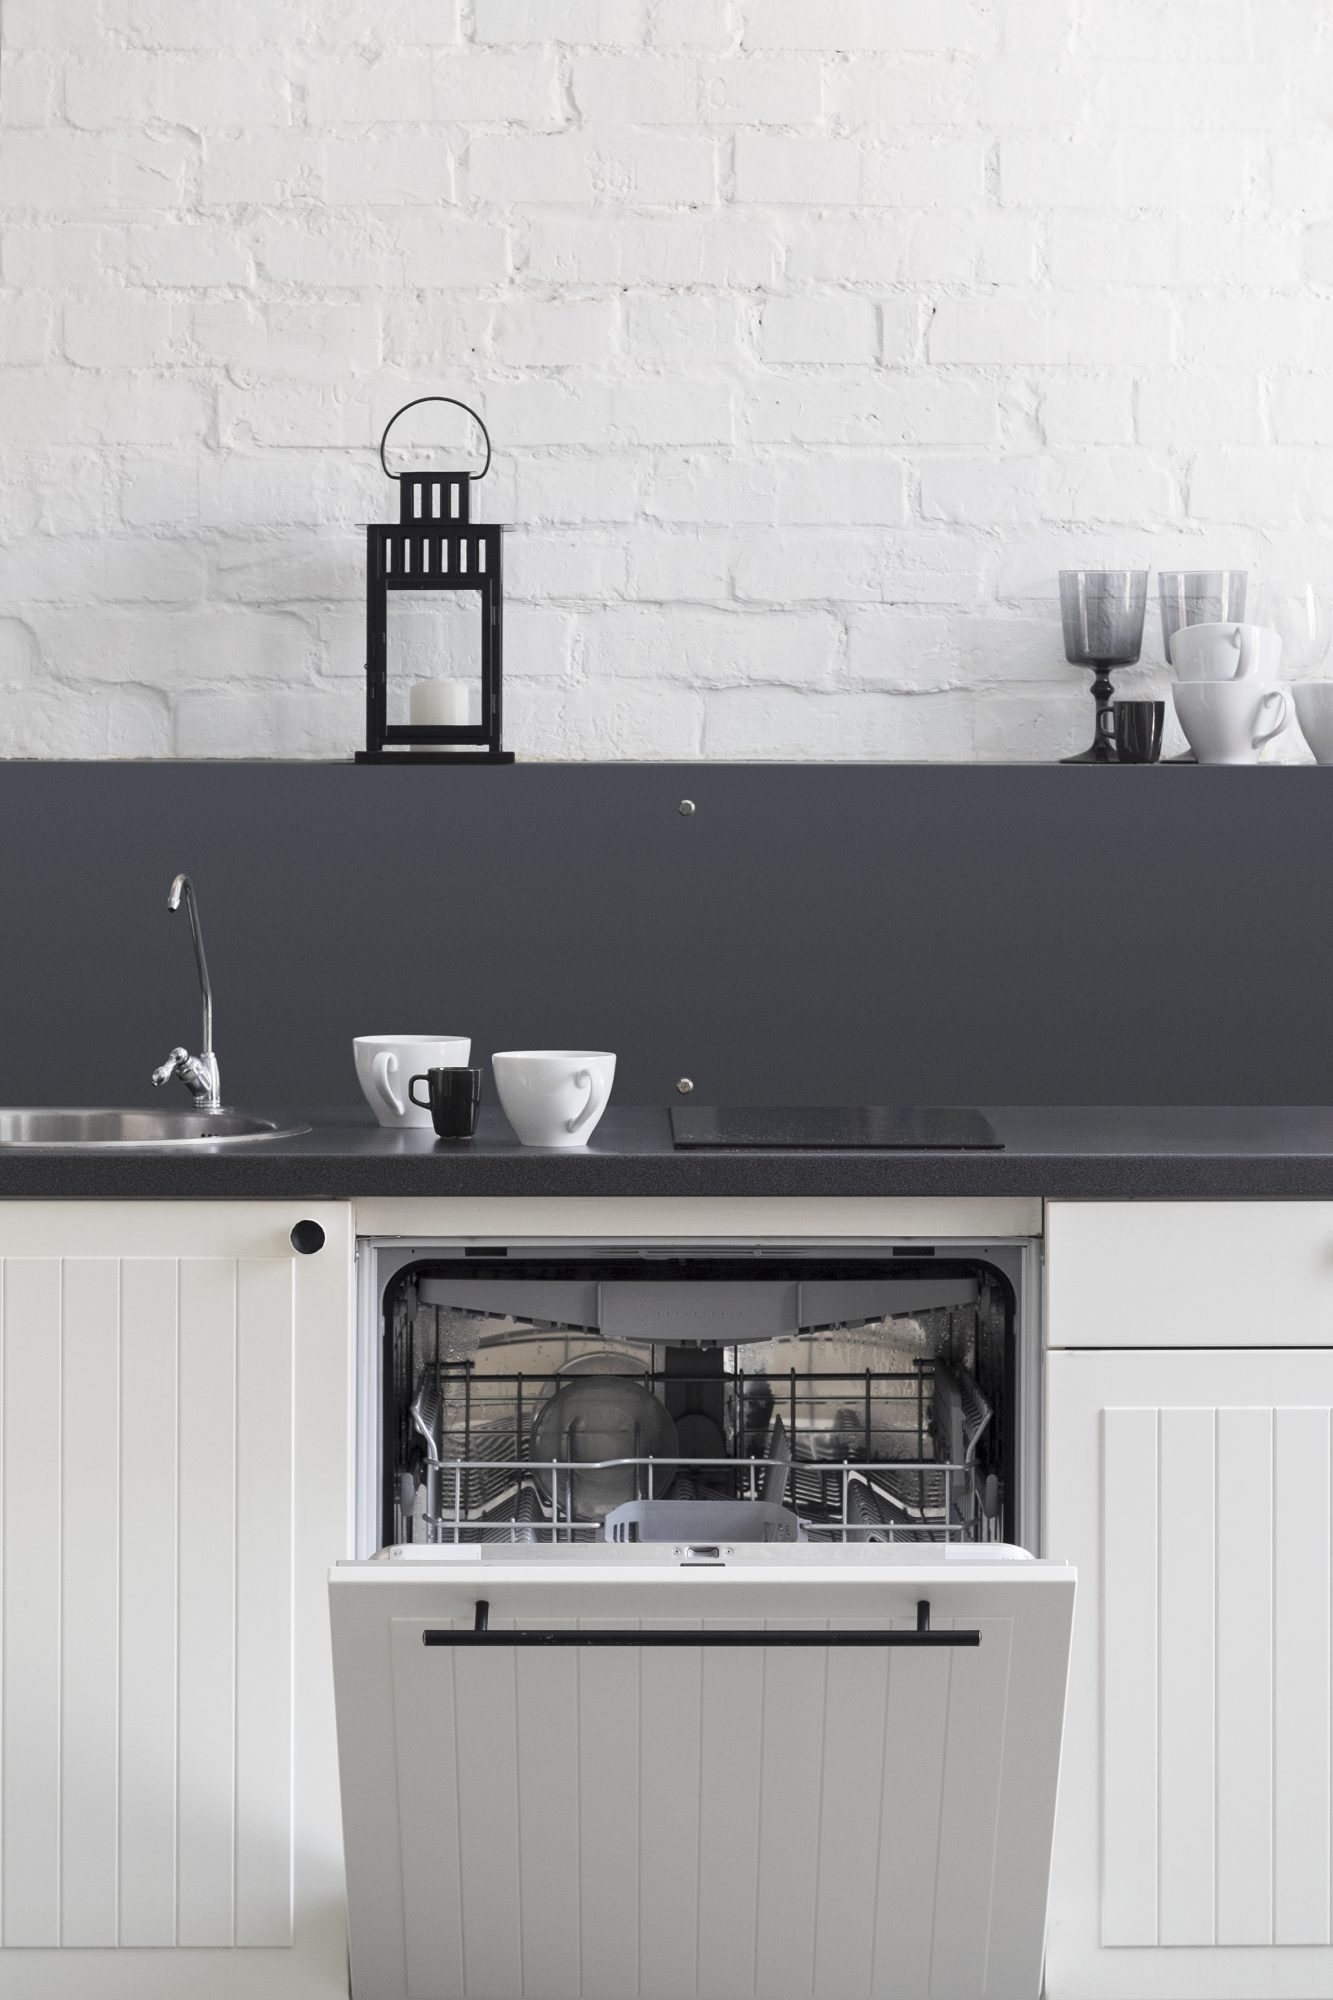 The One Thing You Need To Do With Your Dishwasher Before A